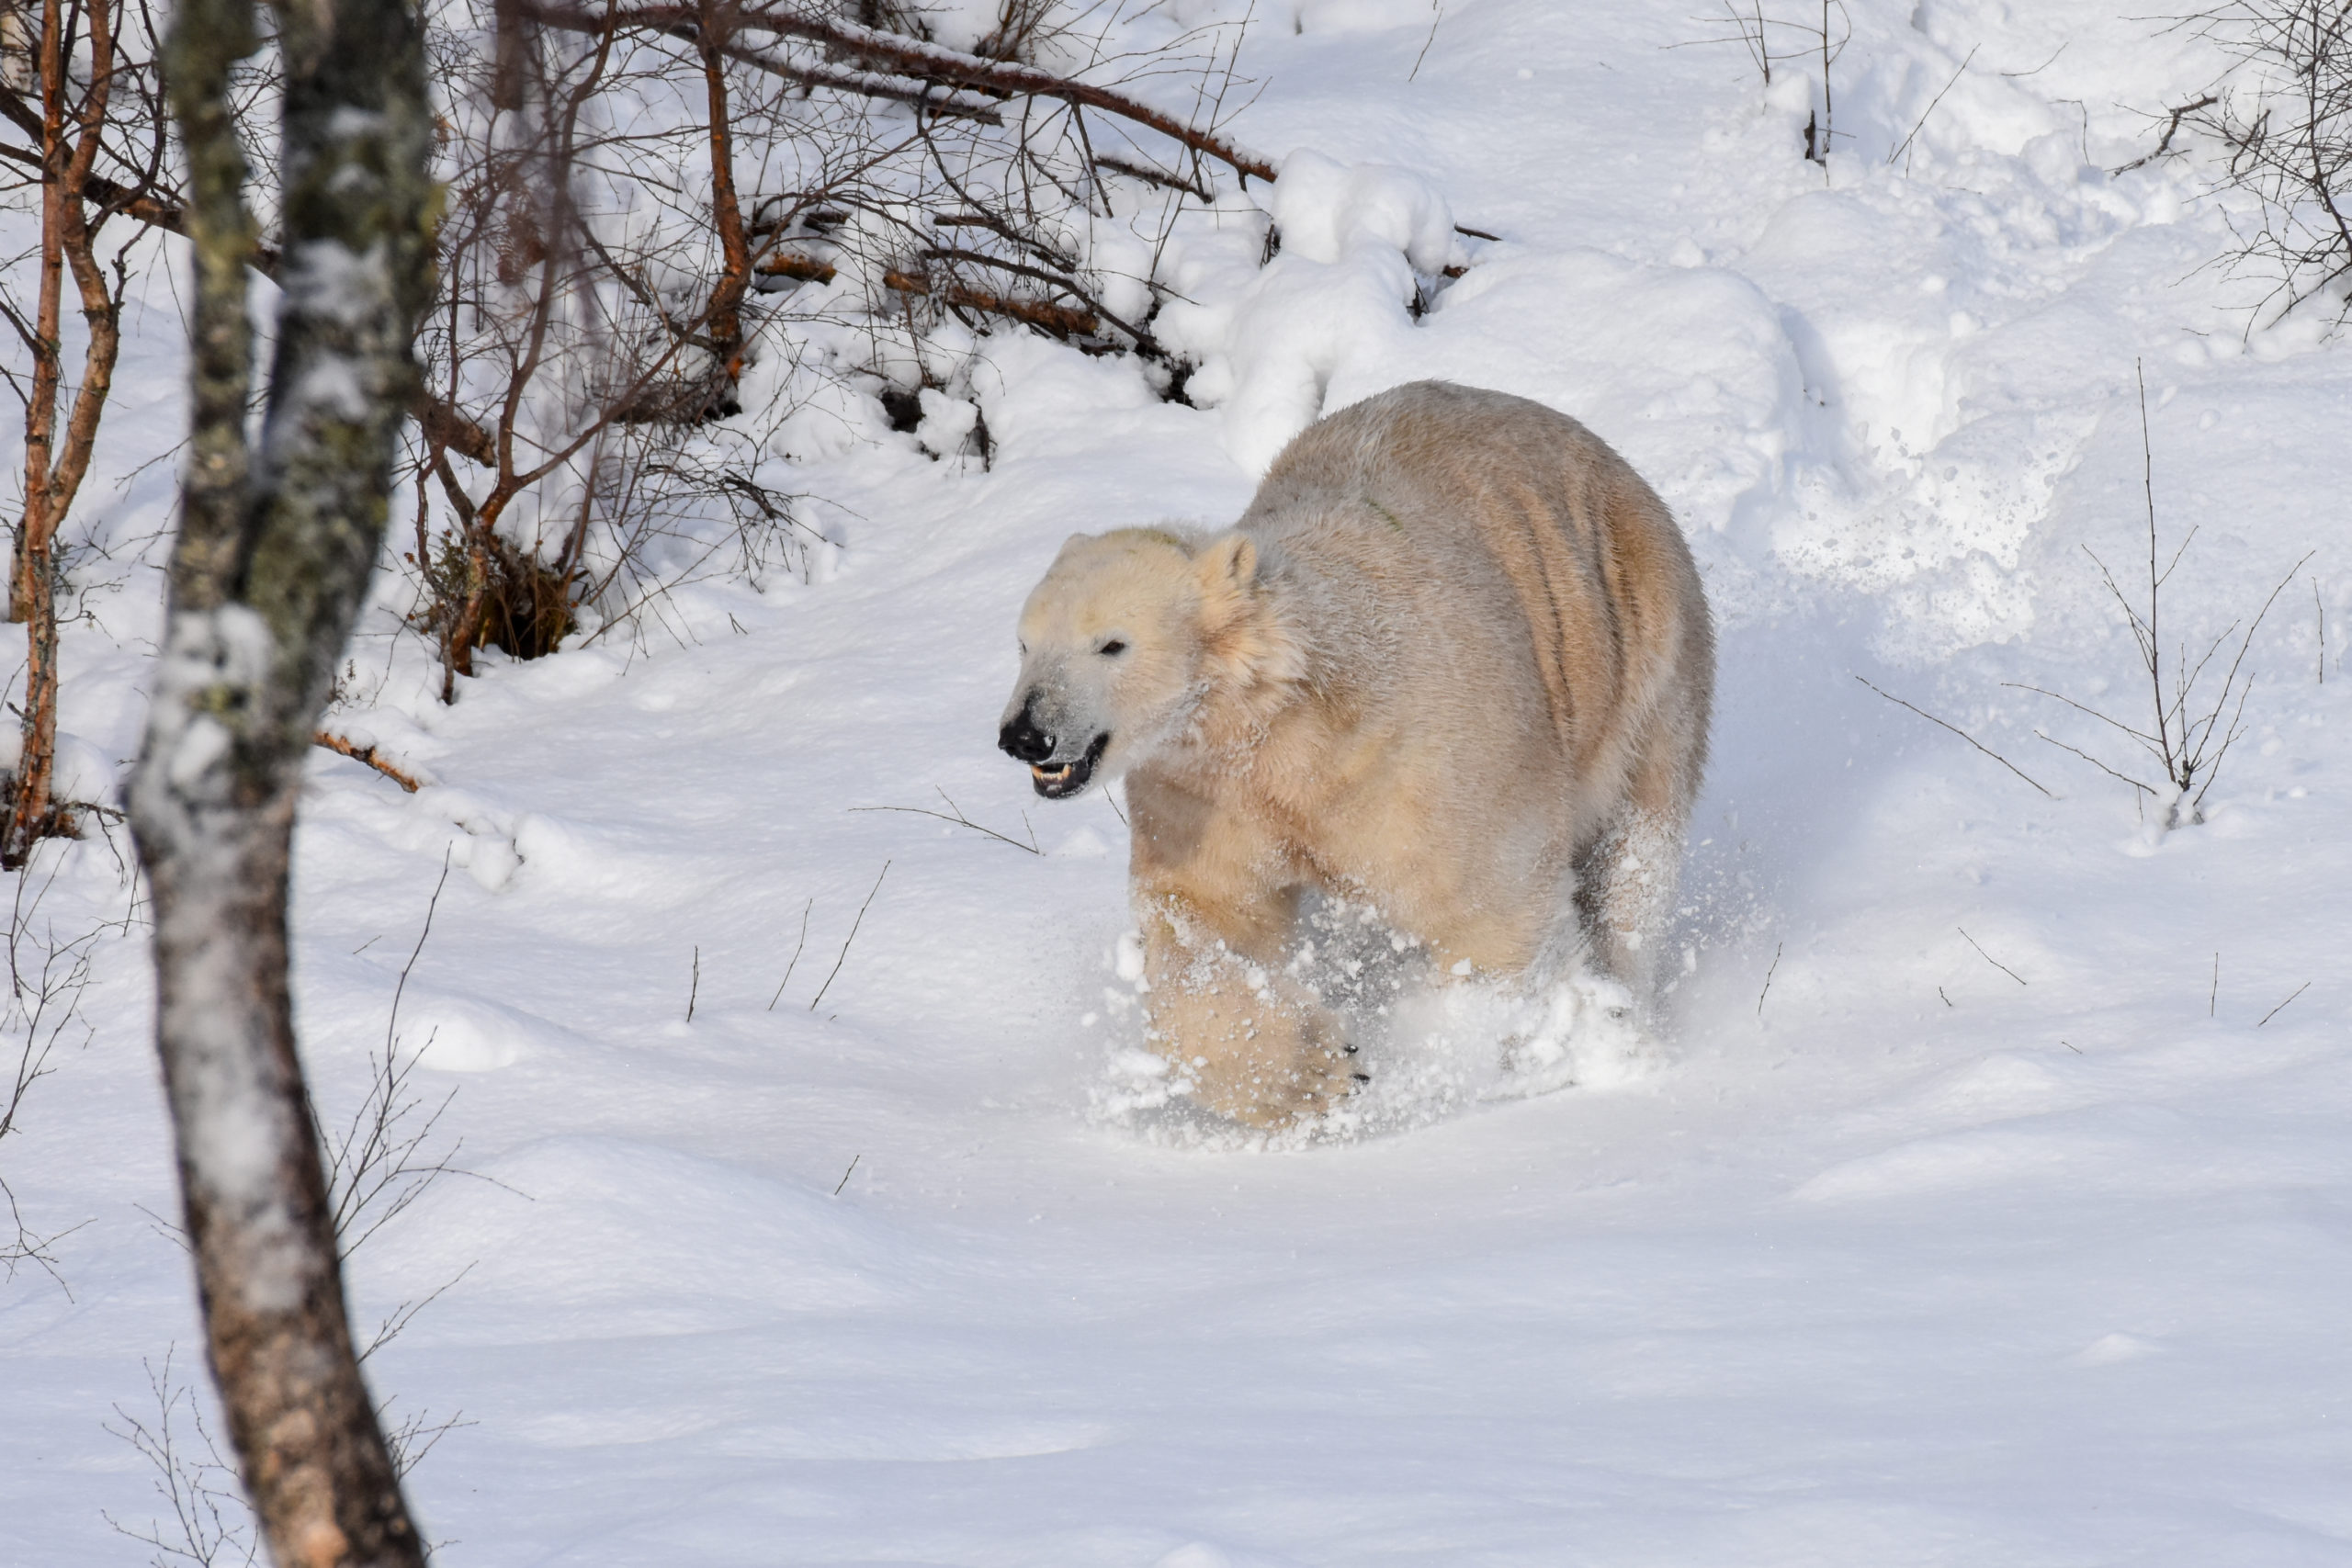 Hamish the polar bear having fun in the snow.